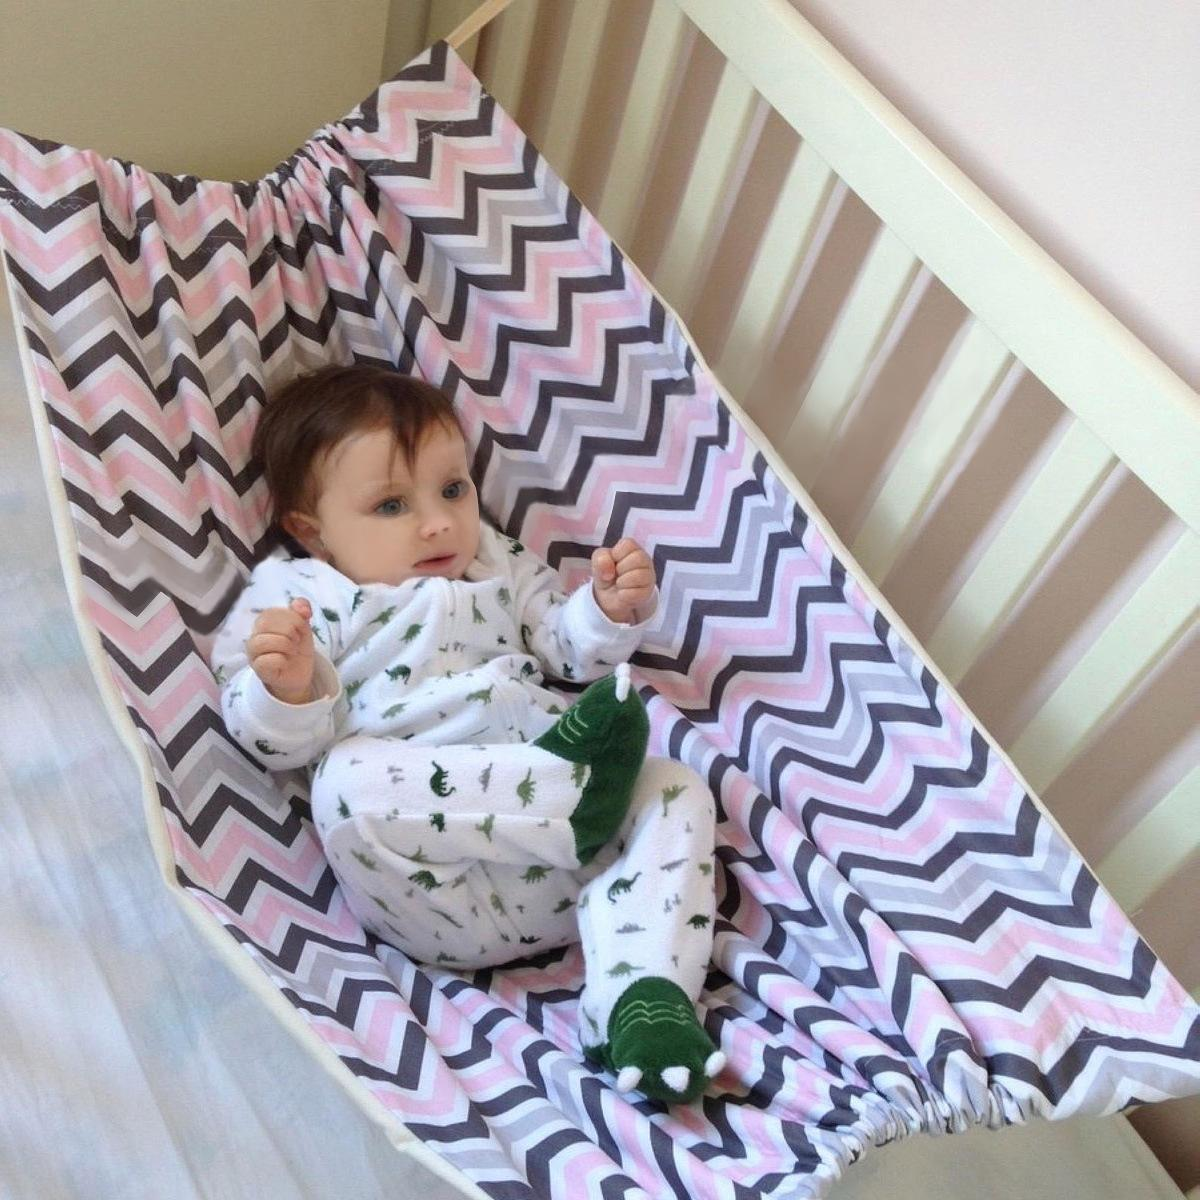 INS Removable portable bed kits for European and American families Children's bedding Baby hammock rest and recreation at leisure